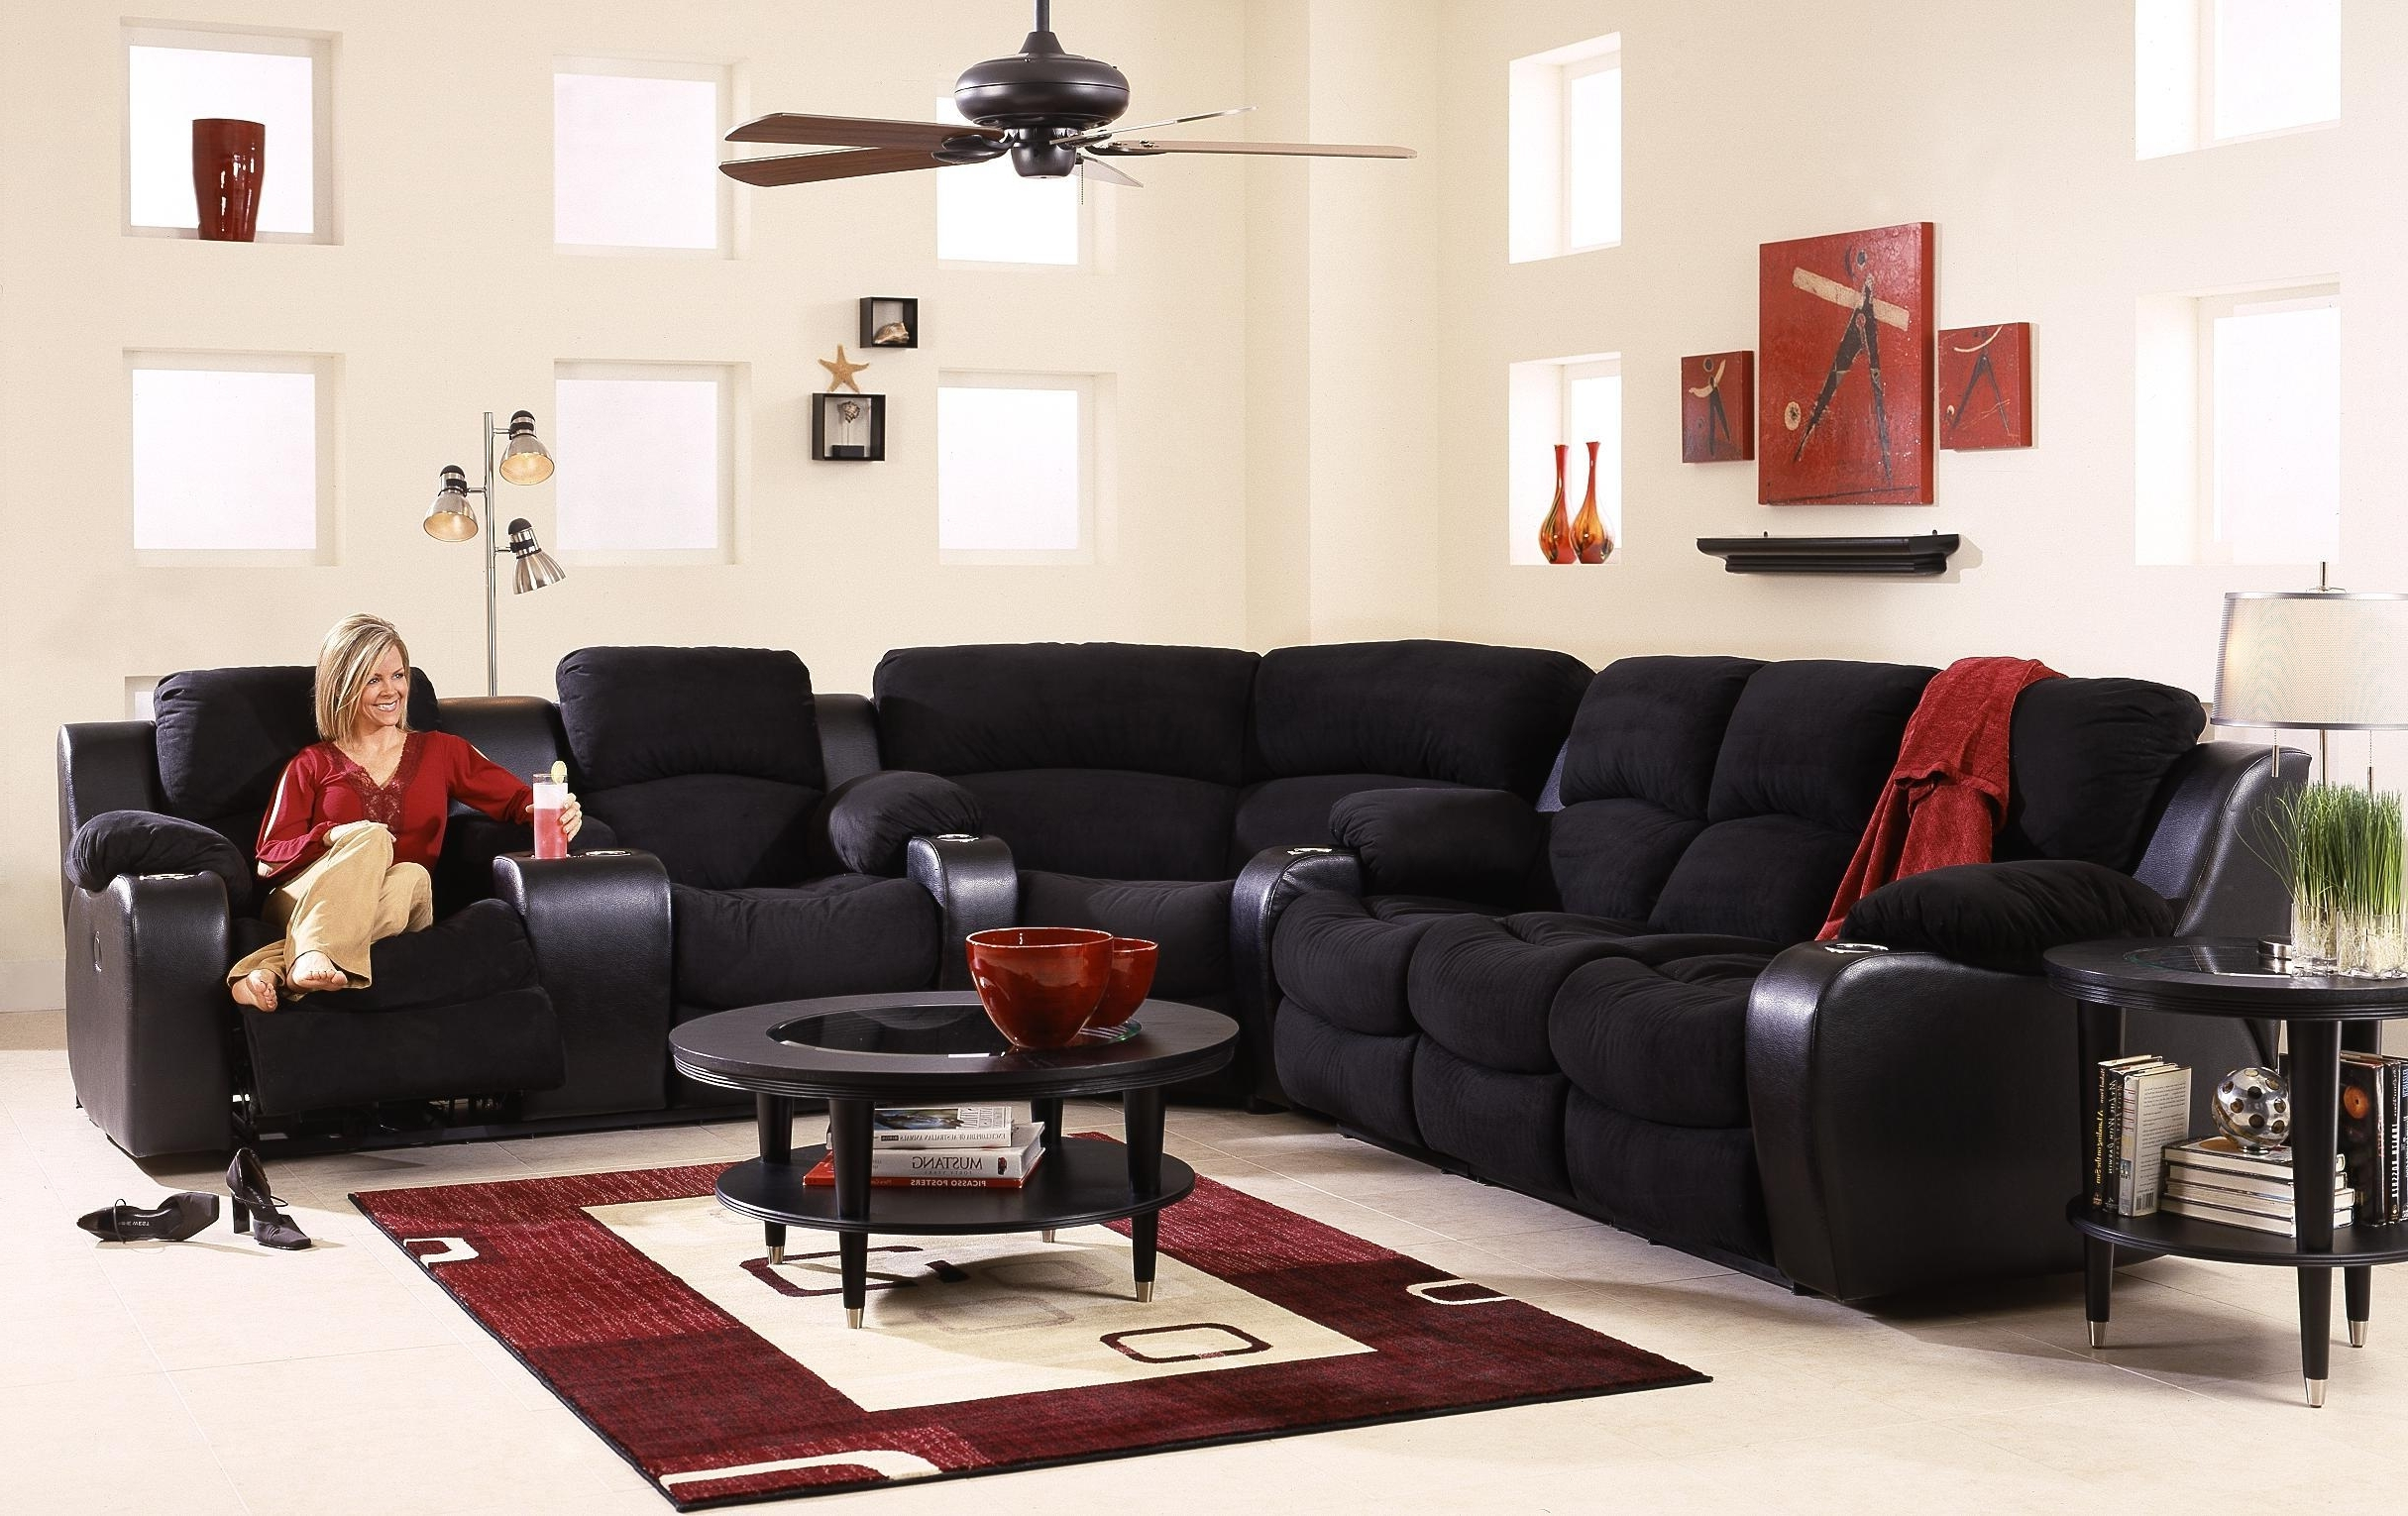 Most Current Awesome Sectional Sofas With Cup Holders Unique – Tatsuyoru Regarding Grand Furniture Sectional Sofas (View 11 of 20)